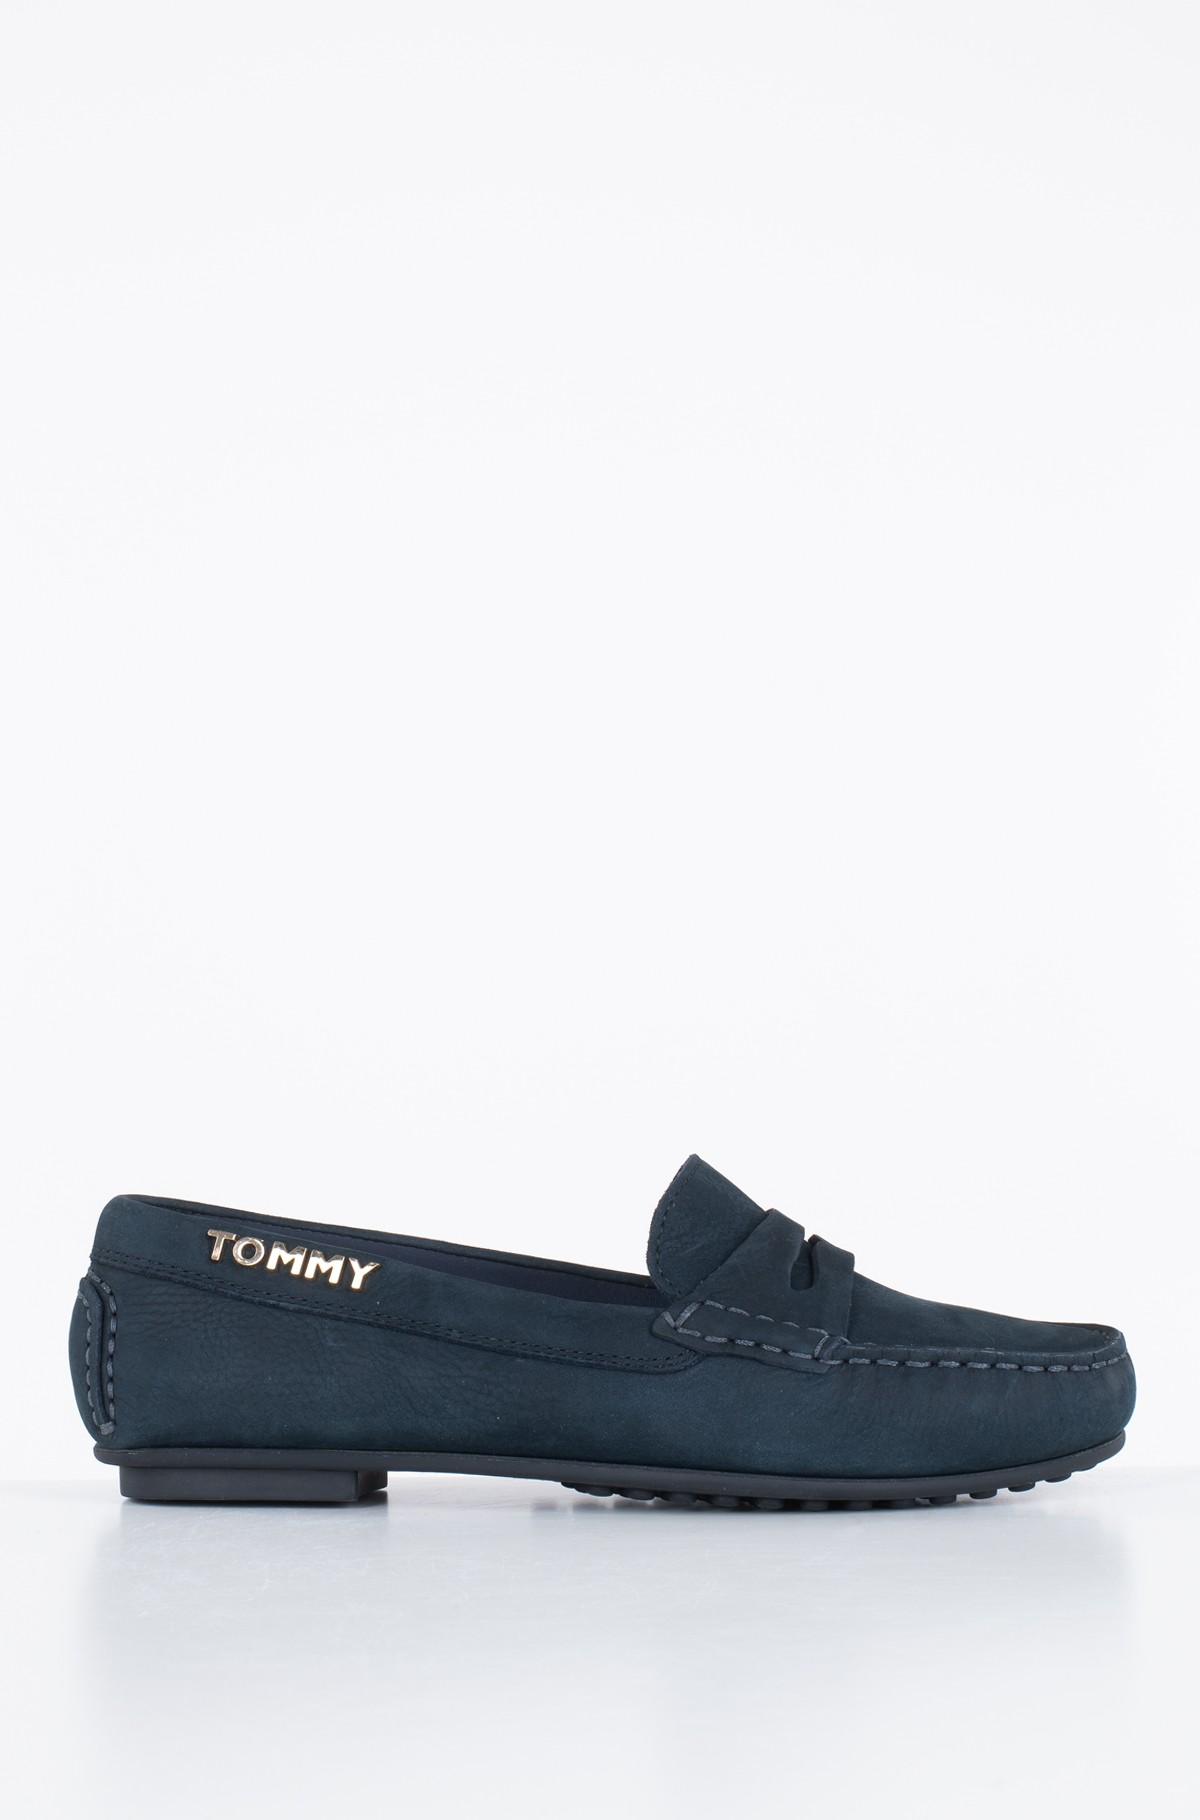 Mokasinai  COLORFUL TOMMY MOCCASIN-full-1